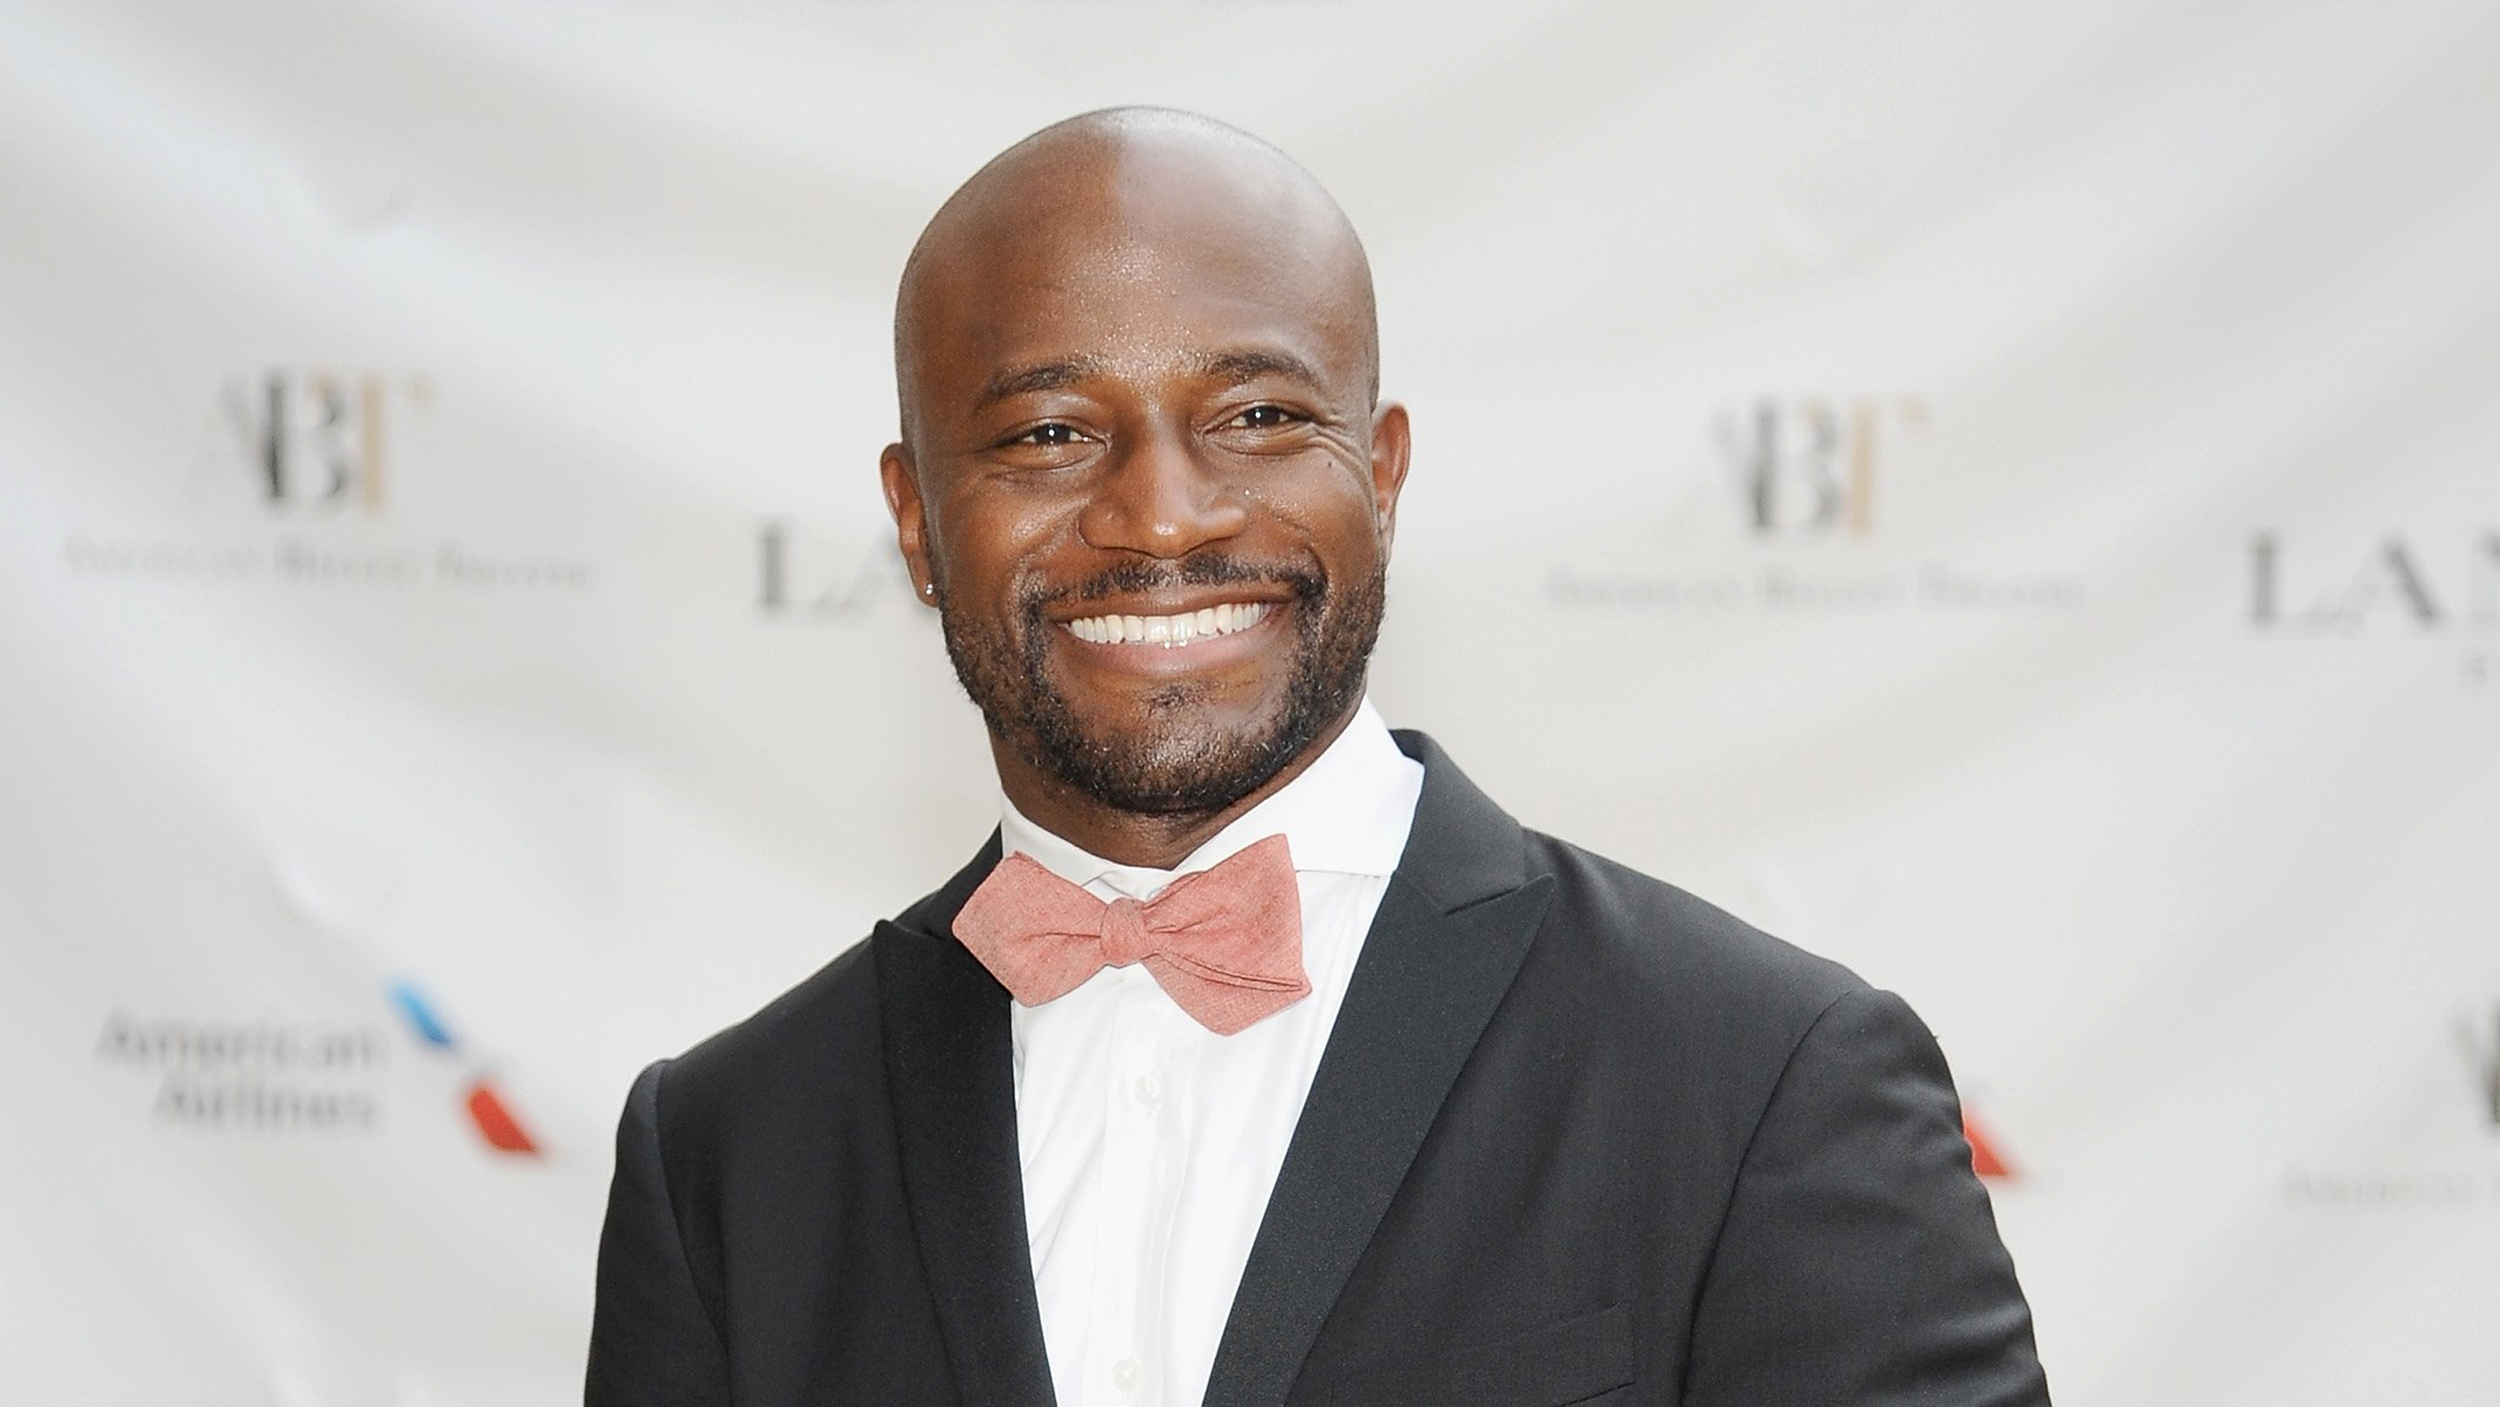 taye diggs net worthtaye diggs wife, taye diggs movies, taye diggs imdb, taye diggs interview, taye diggs vine, taye diggs twitter, taye diggs hallejulah, taye diggs instagram, taye diggs scrubs, taye diggs singer, taye diggs, taye diggs net worth, taye diggs gay, taye diggs height, taye diggs wiki, taye diggs nigerian, taye diggs singing, taye diggs wikipedia, taye diggs girlfriend, taye diggs girlfriend amanza